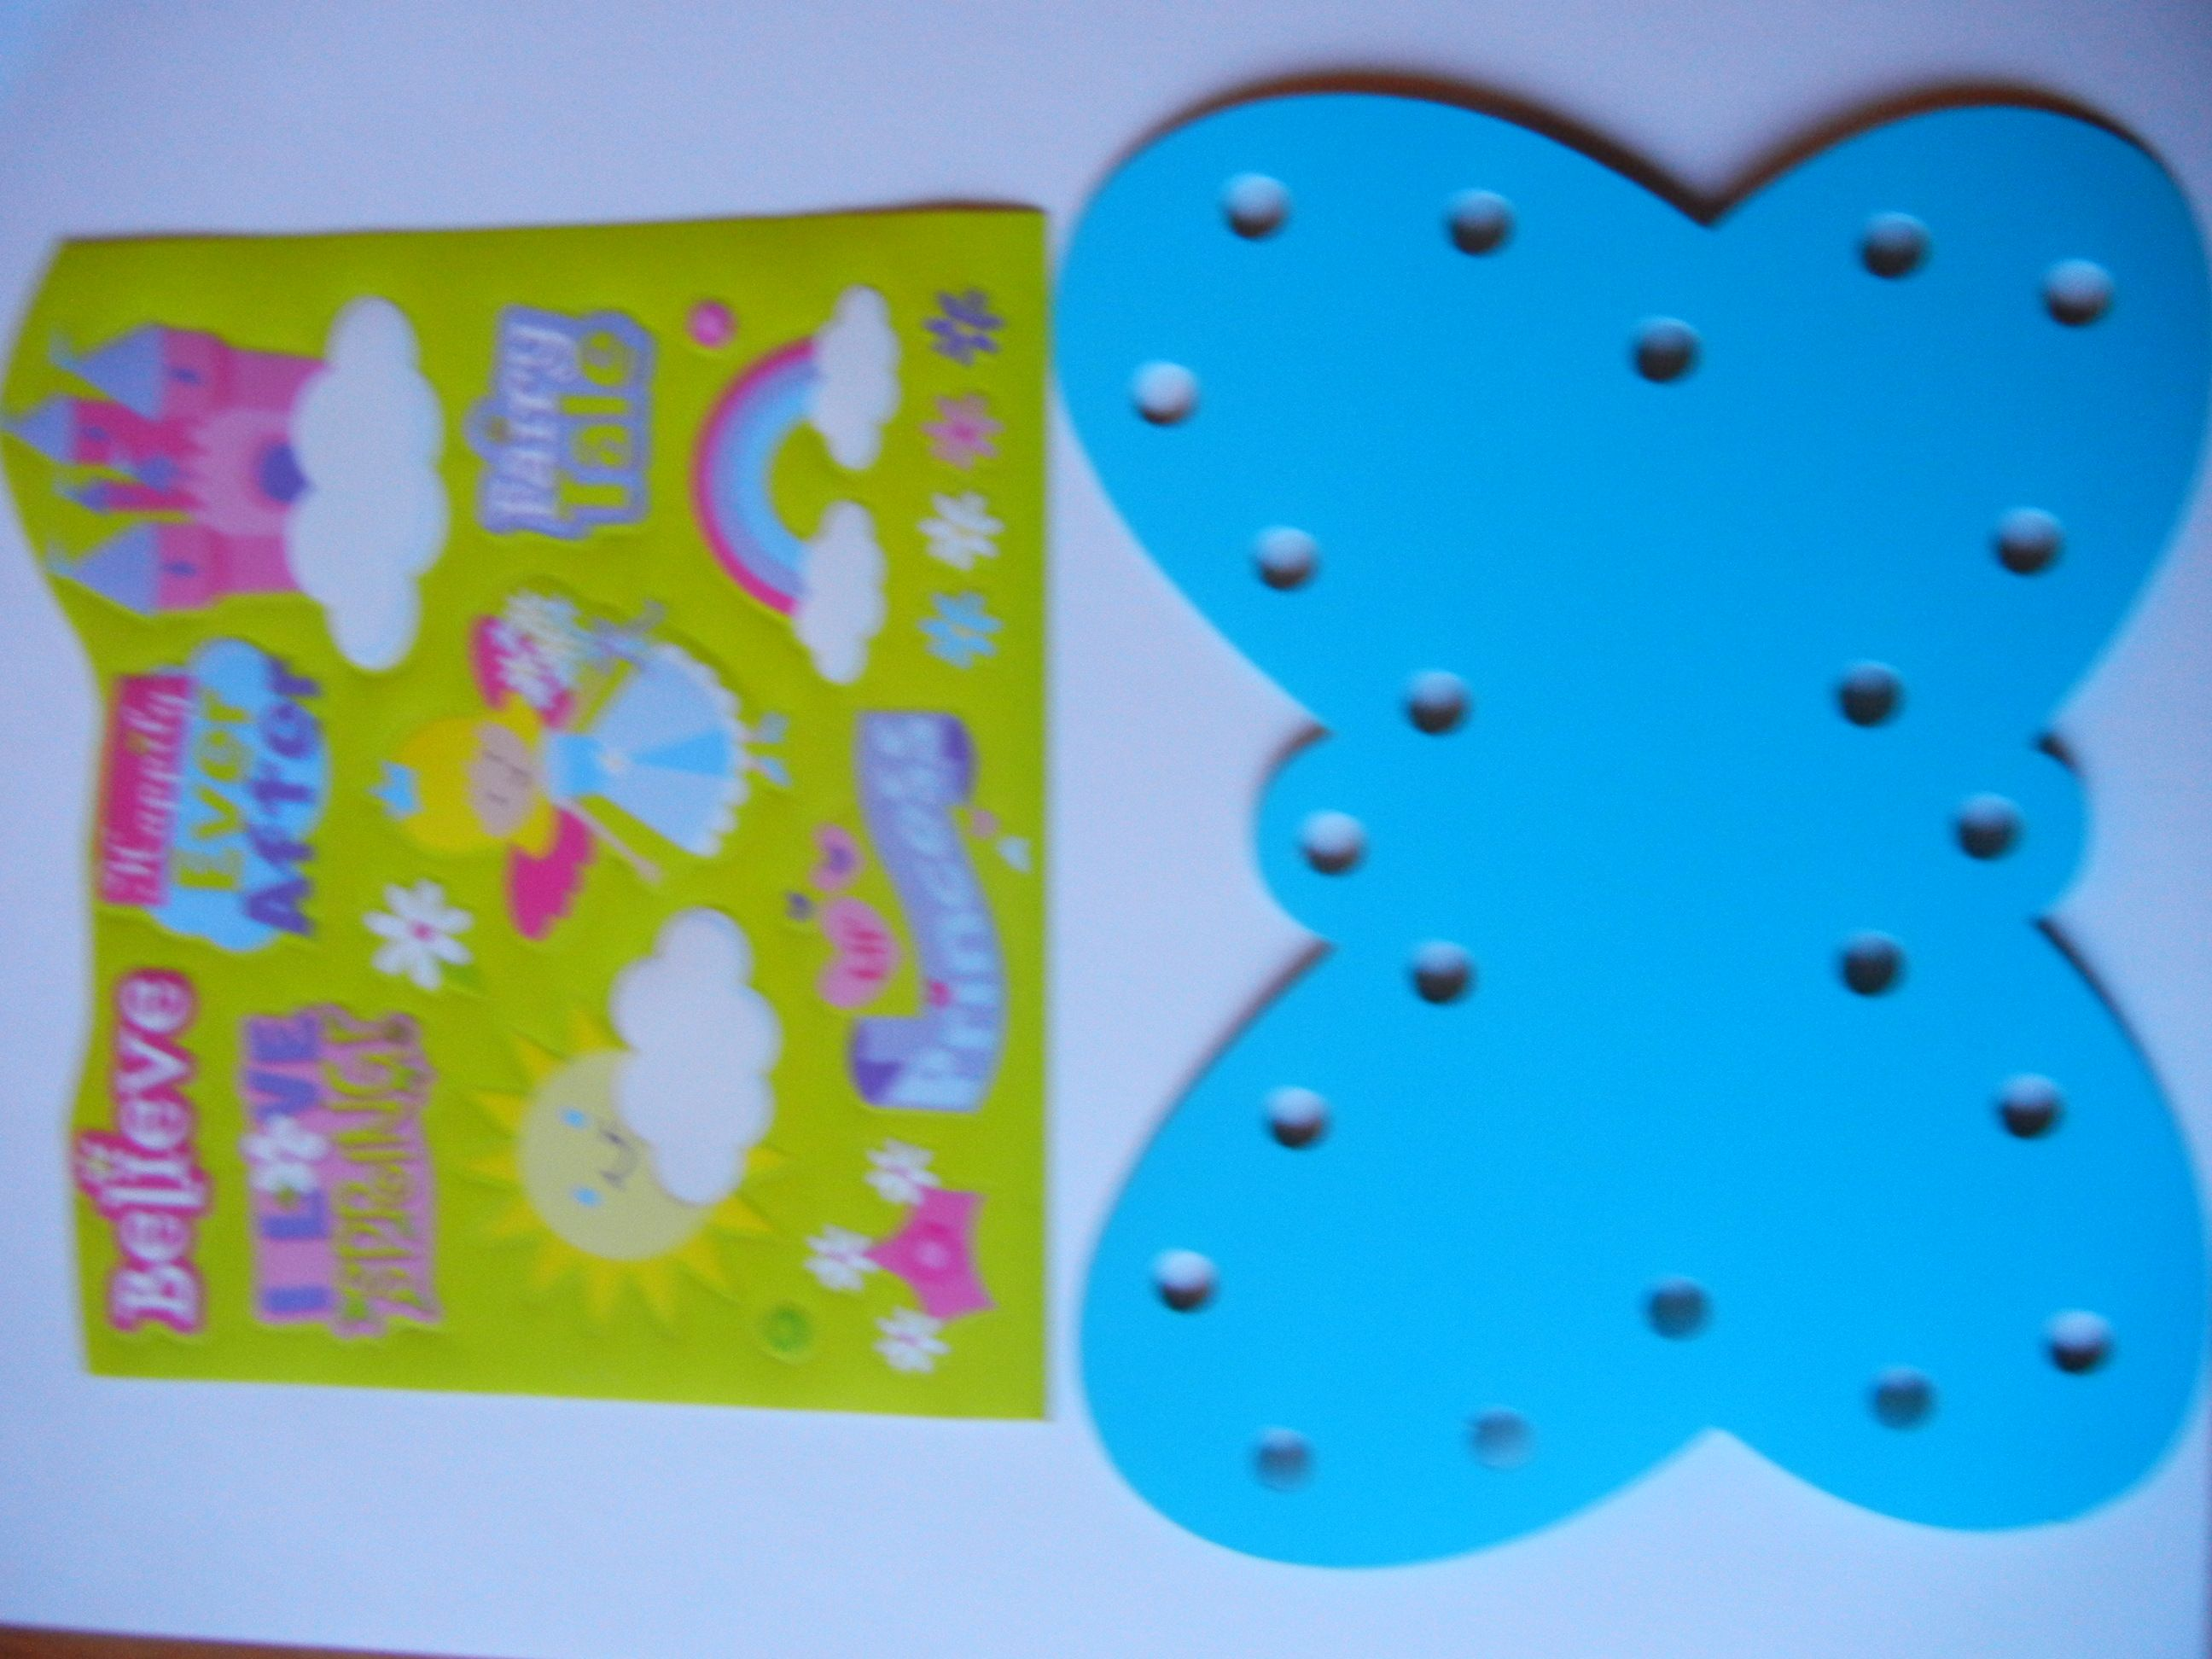 Butterfly lacing card with stickers.   Have your child use cute stickers to decorate the butterfly lacing card.   Then use a shoelace to sew the card.  Great for fine motor skills!